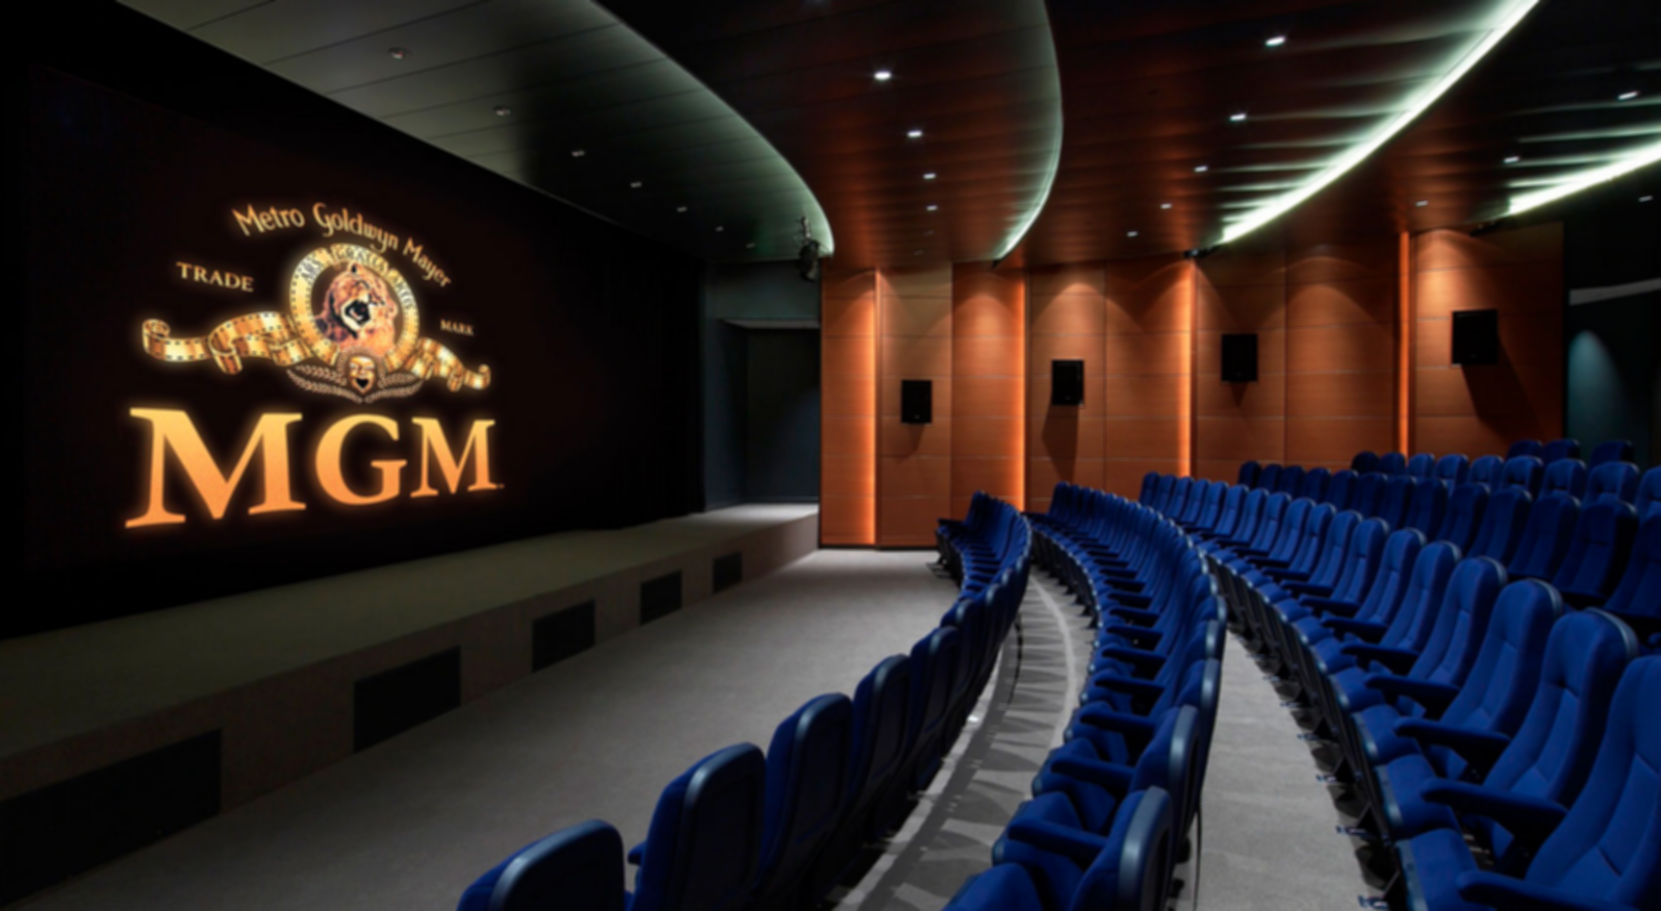 Metro Goldwyn Mayer Office - Screening Room